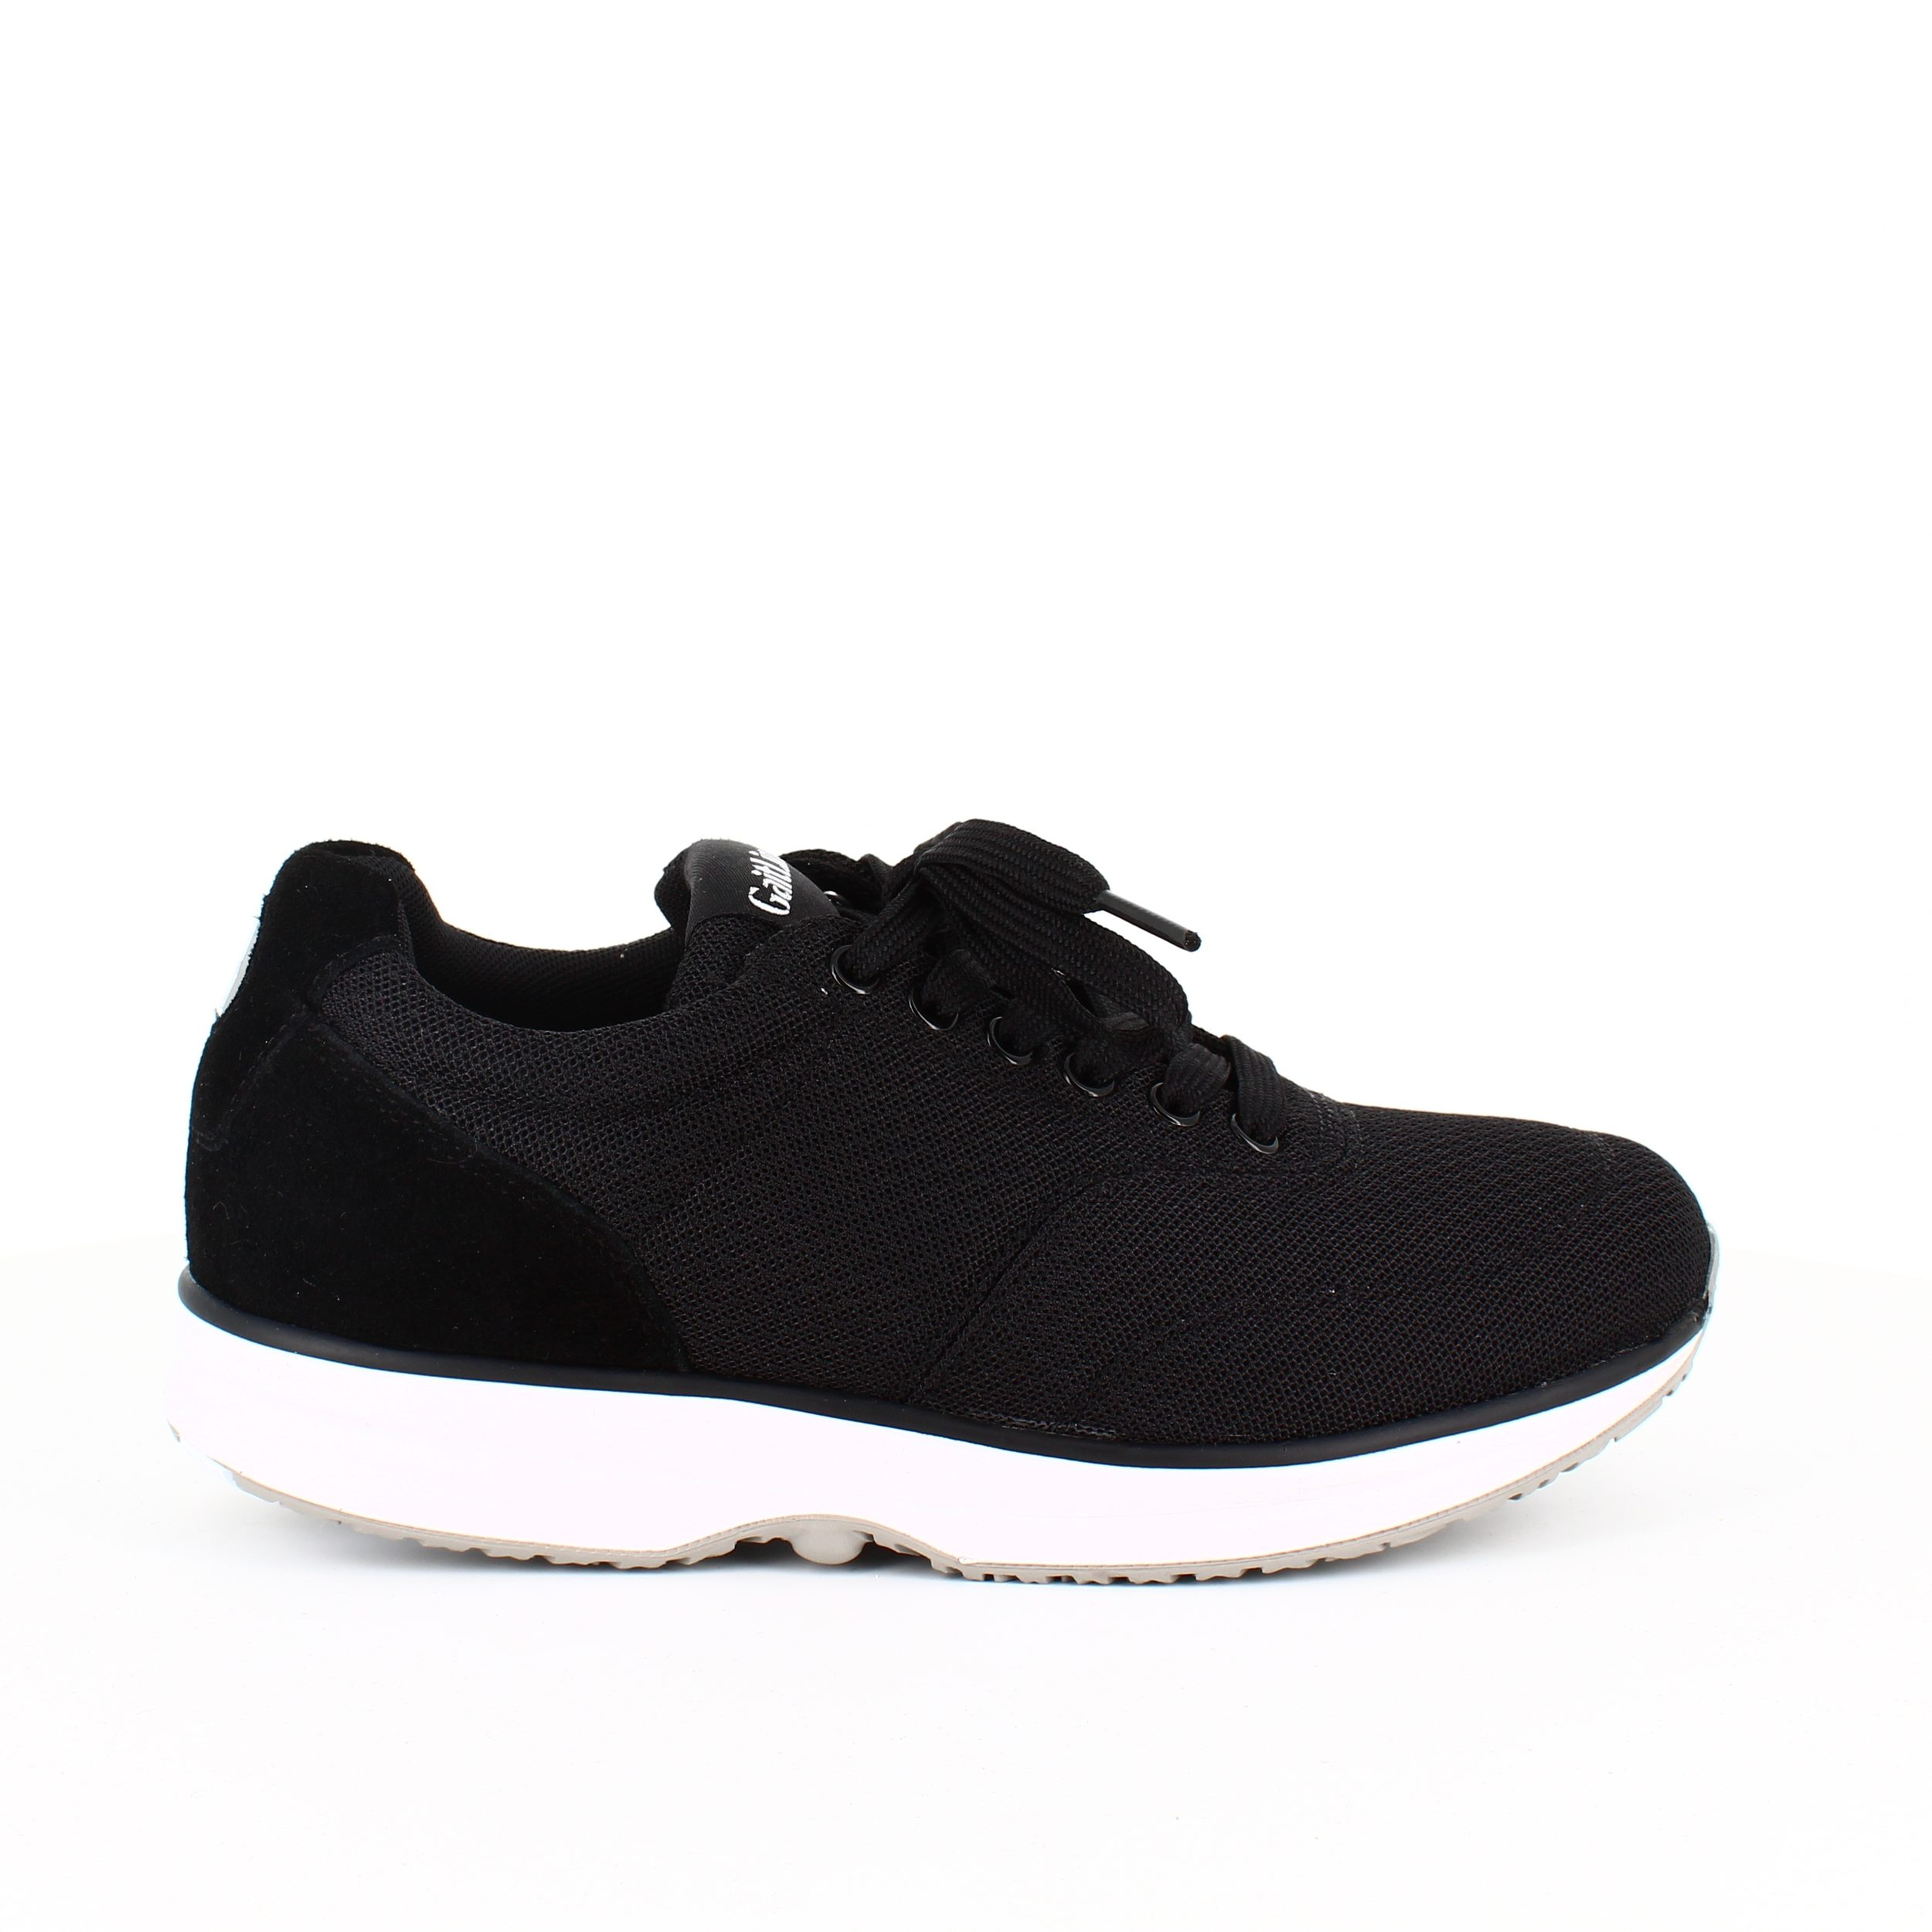 Image of   Flotte Sorte sneakers fra Gaitline - 44